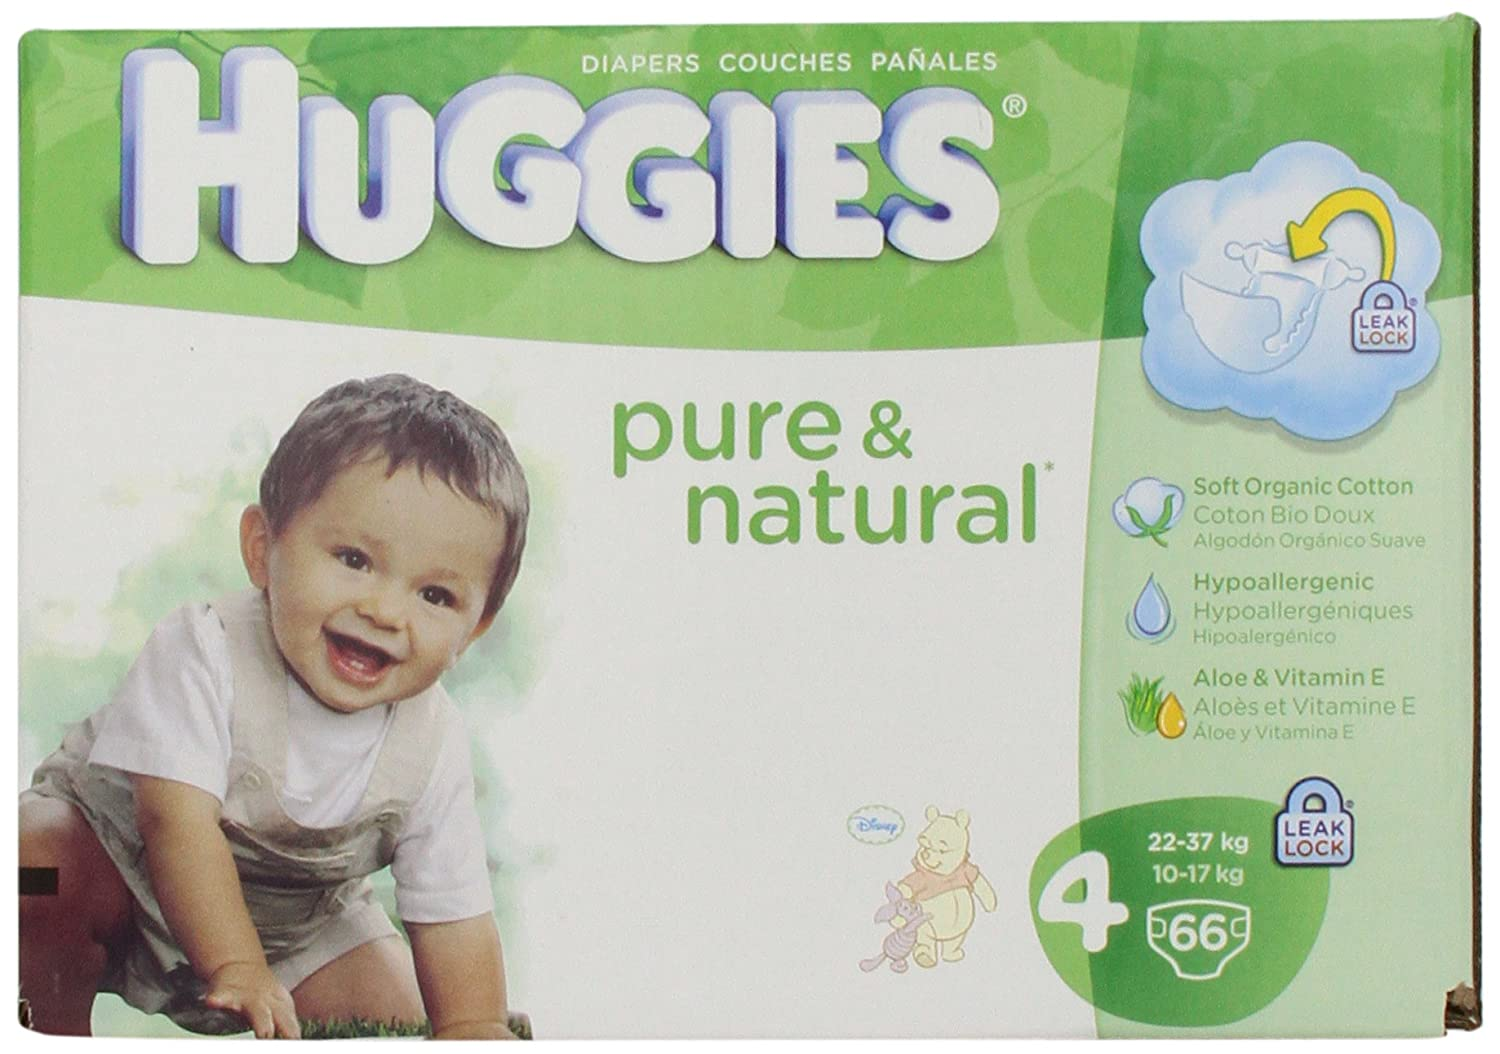 Amazon.com: Huggies Pure & Natural Diapers - Size 4 - 66 ct: Health & Personal Care